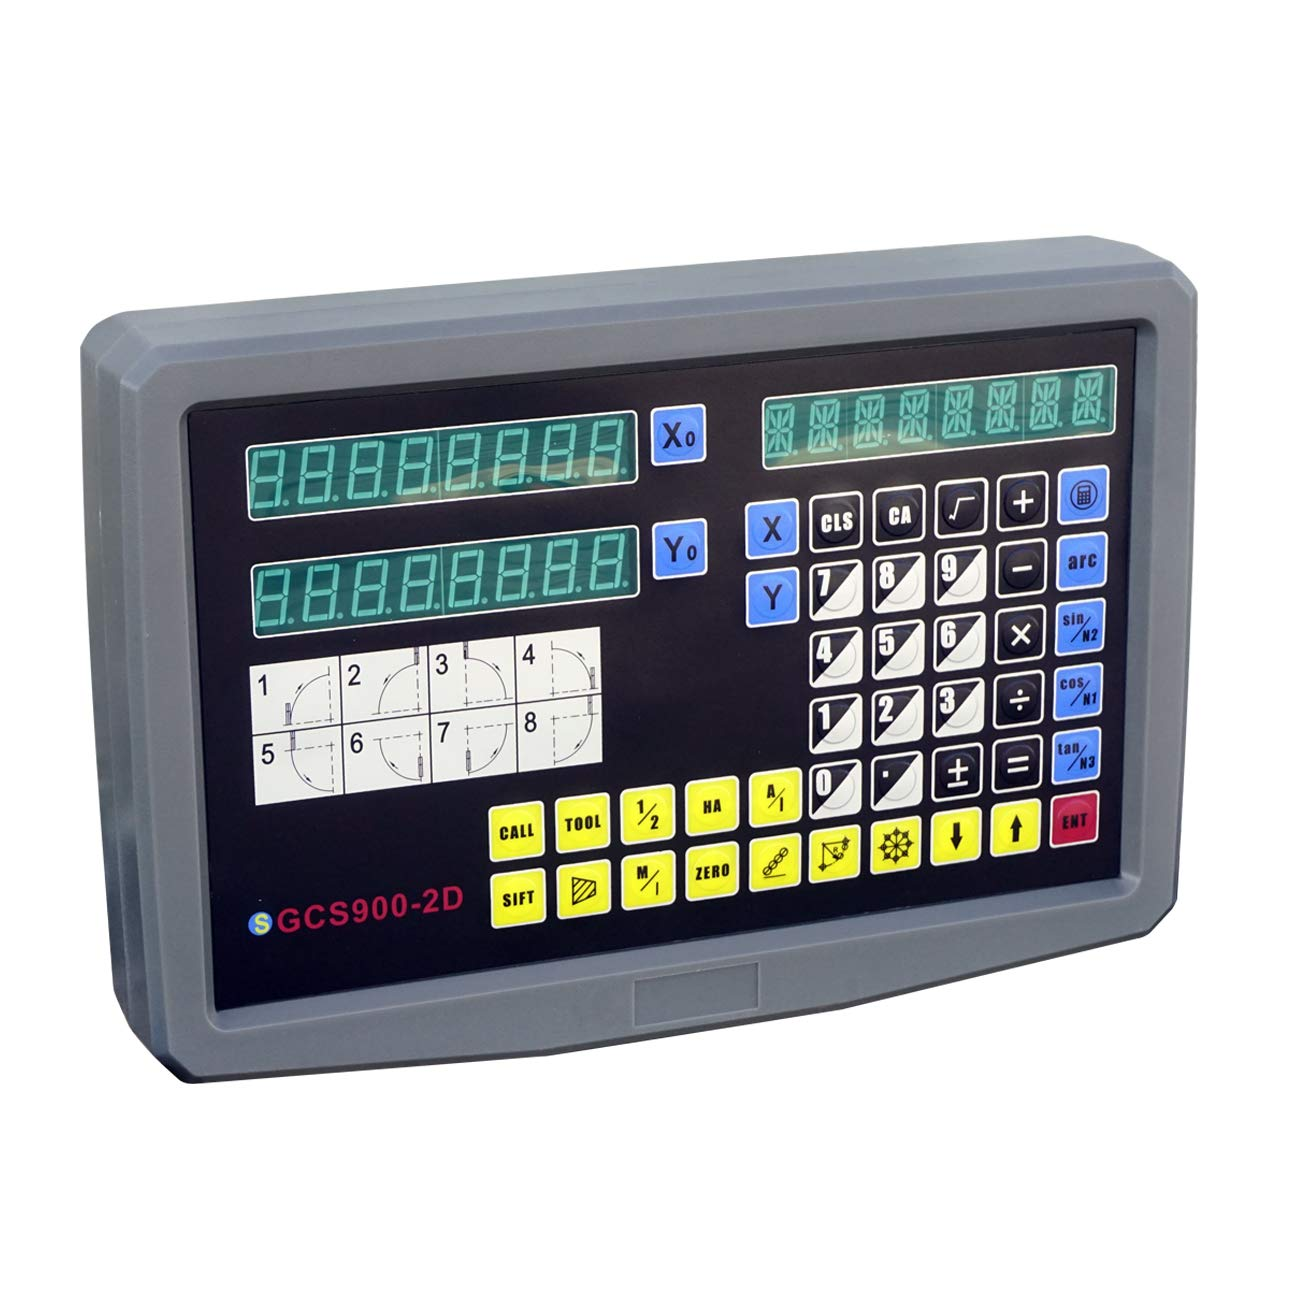 DCHOUSE 5 digit display for milling 2 axes digital readable grating scale display